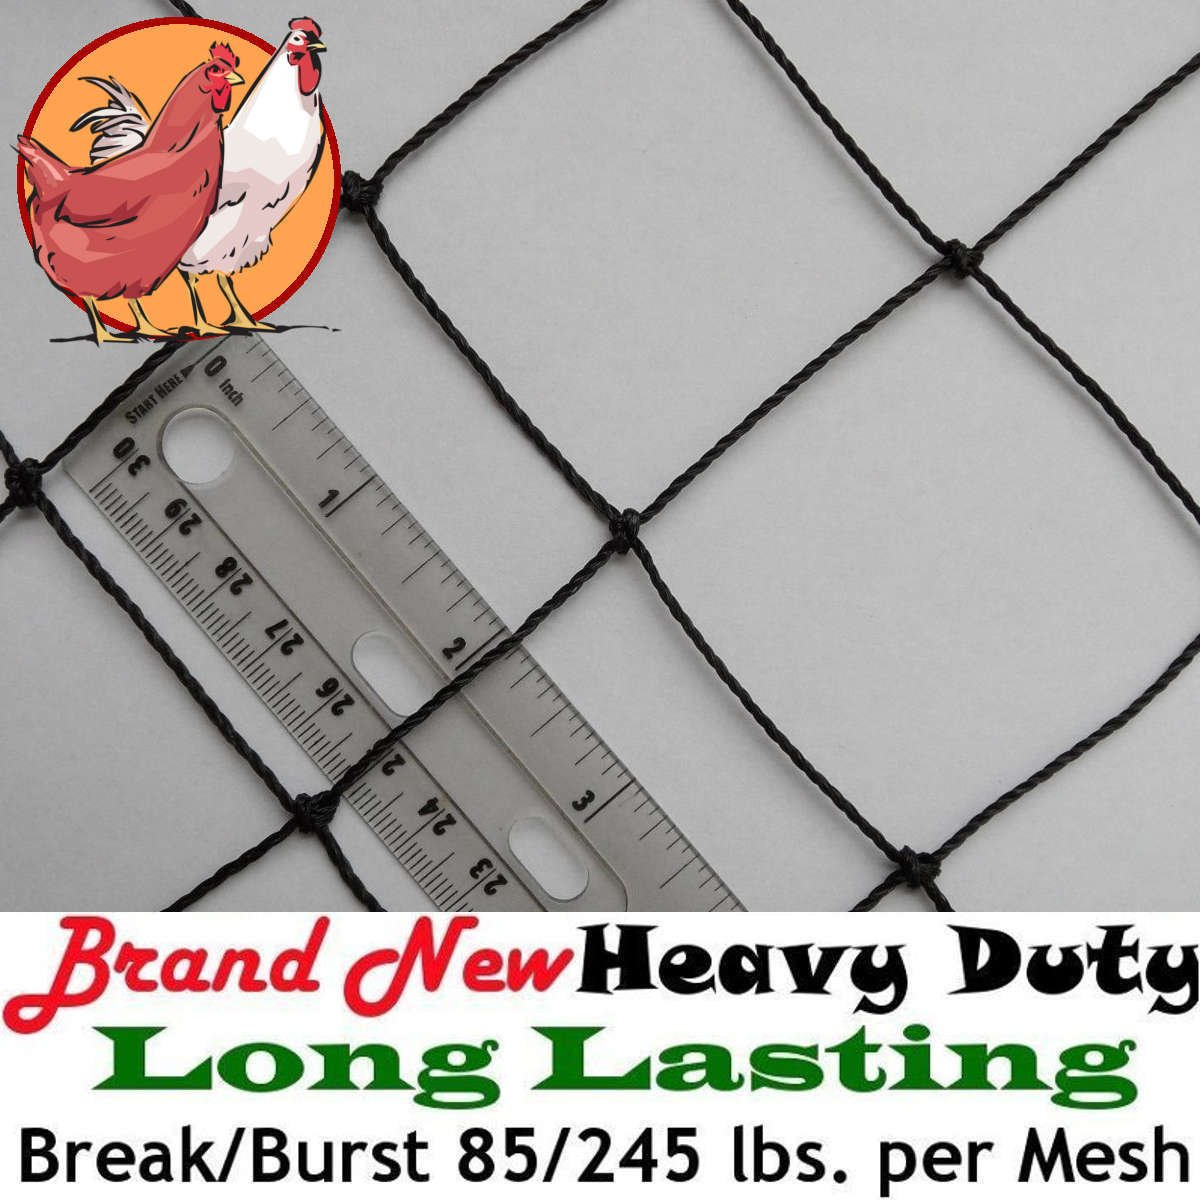 Poultry Netting 25ft x 50ft Heavy Knotted 2'' Mesh Nets Aviary Gamefowl Quail Chicken Bird Block Net Long Lasting Break/Burst 85/245 lb Polyethylene 8-10 Year Lifespan 13lb Ship Weight by Pinnon Hatch Farms